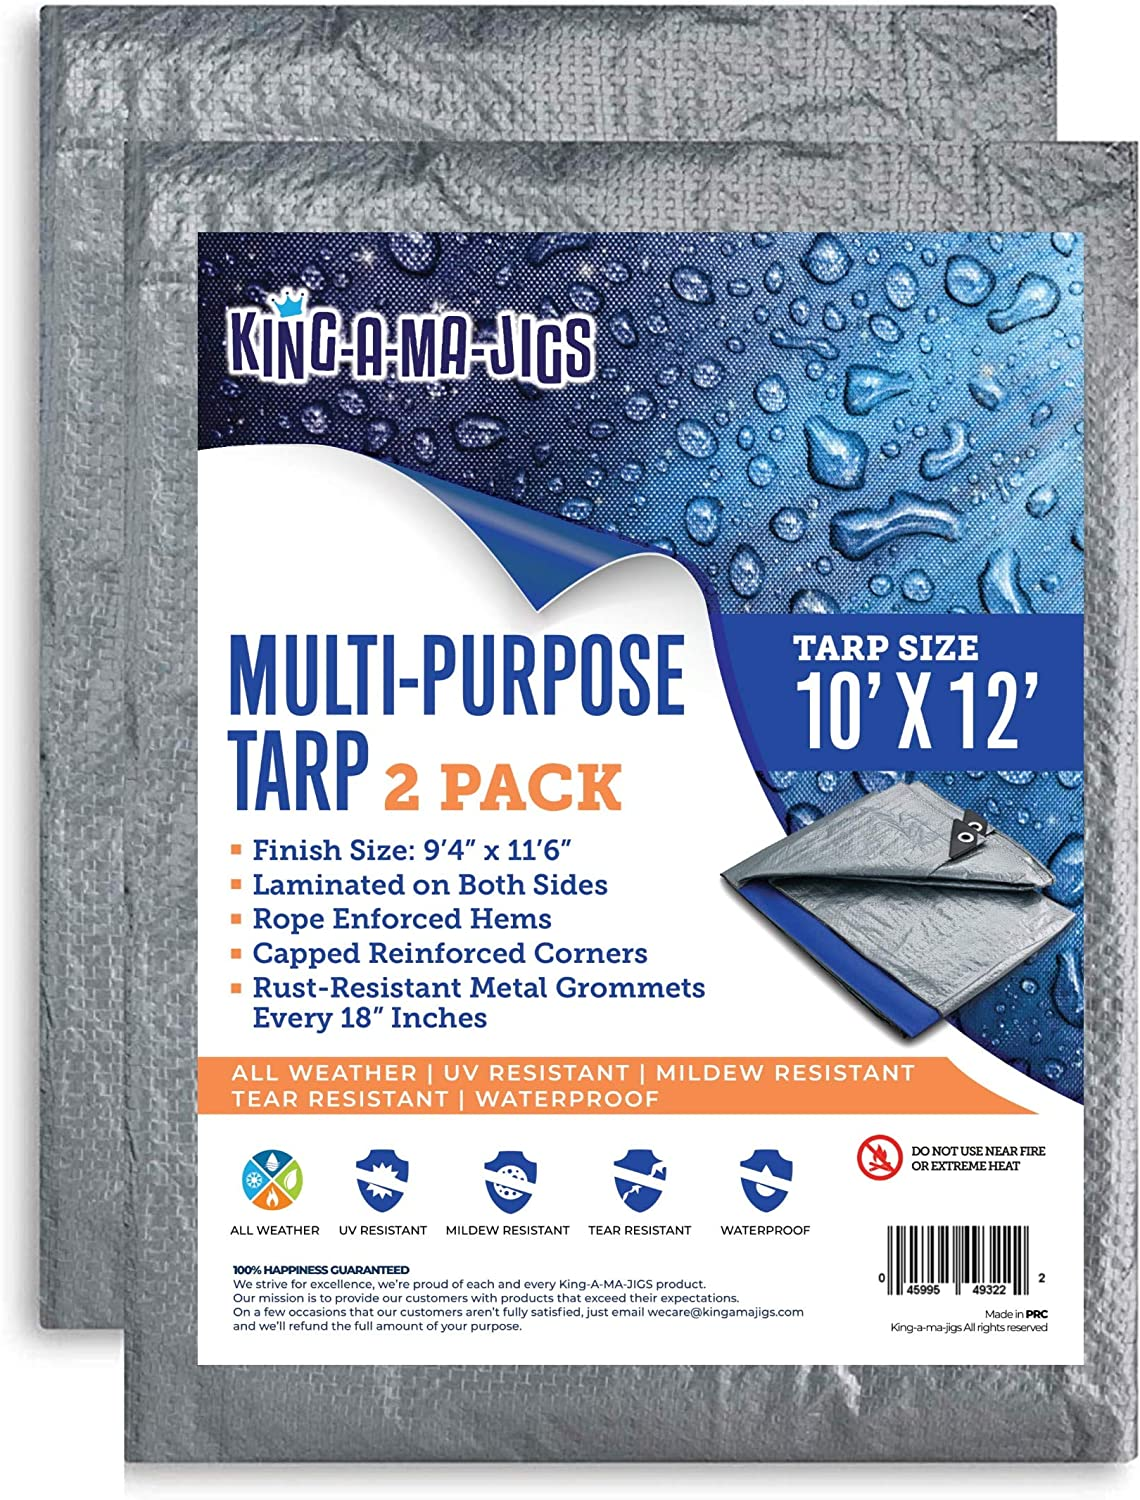 (2 Pack) 10x12 Waterproof Tarp - 5.5 Mil - All-Purpose Plastic Poly Tarp With Metal Grommets - Emergency Rain Shelter, Outdoor Cover and Camping Use - Blue and Silver (10 Foot. x 12 Foot)